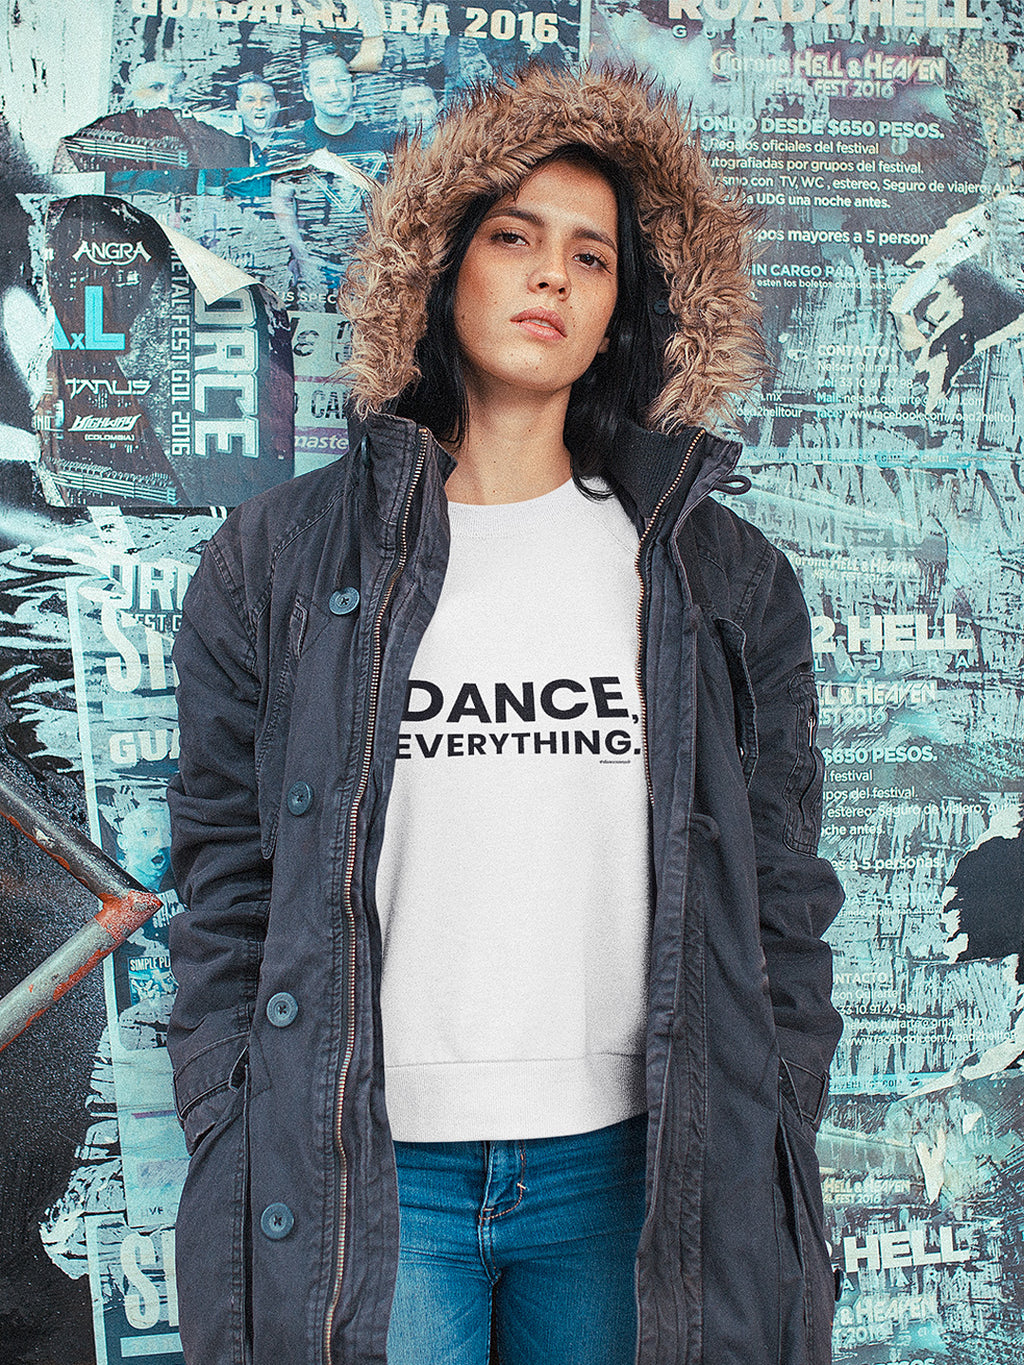 Dance Everything Unisex Sweater White